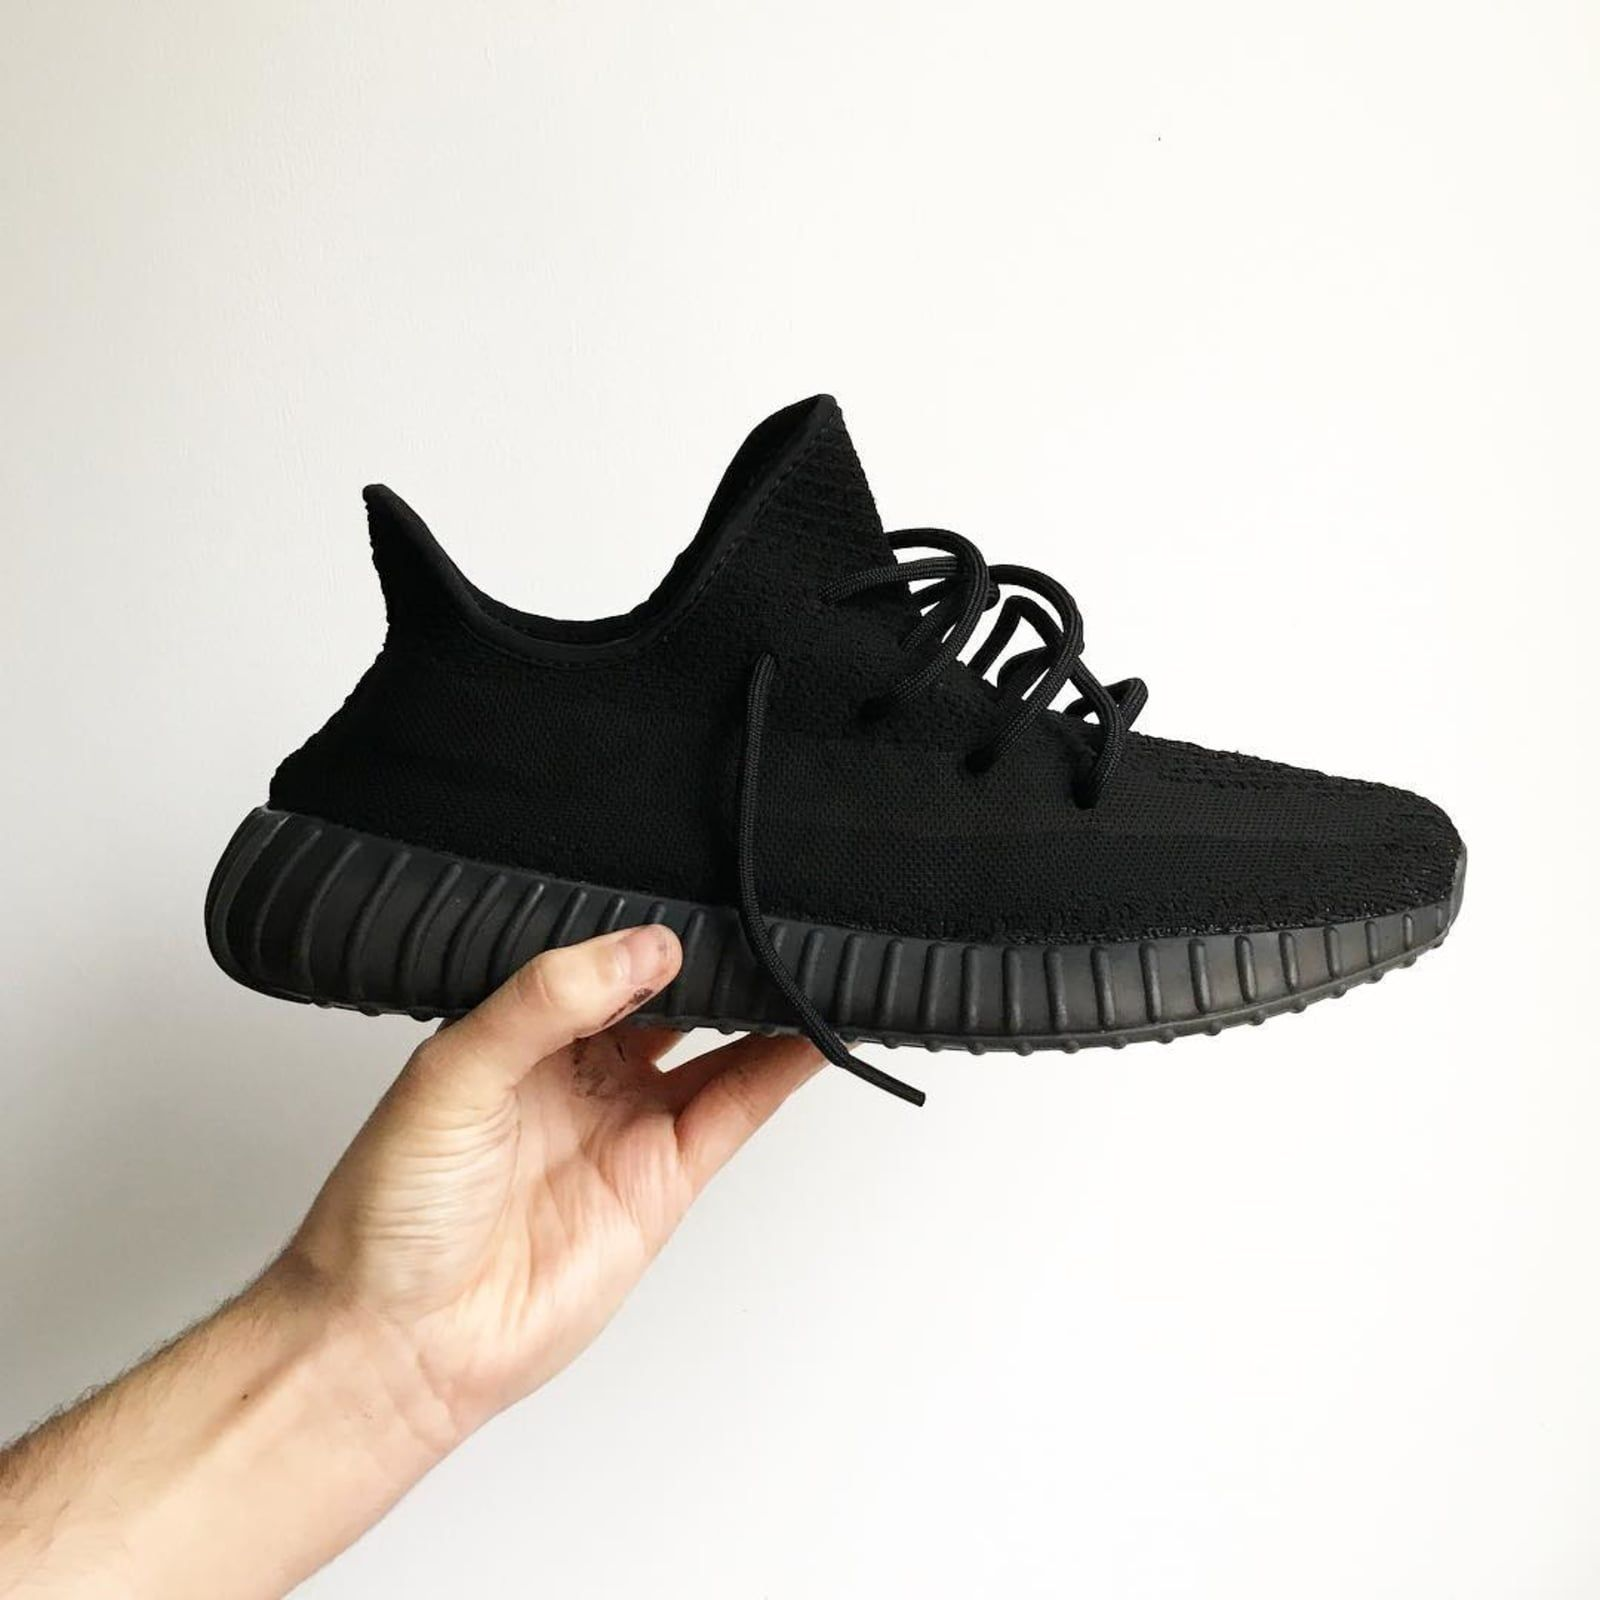 92b506da1 Adidas Yeezy 350 Boost V2 Customs  Blackout by DavidZ Custom - The Best Adidas  Yeezy 350 Boost V2 Customs